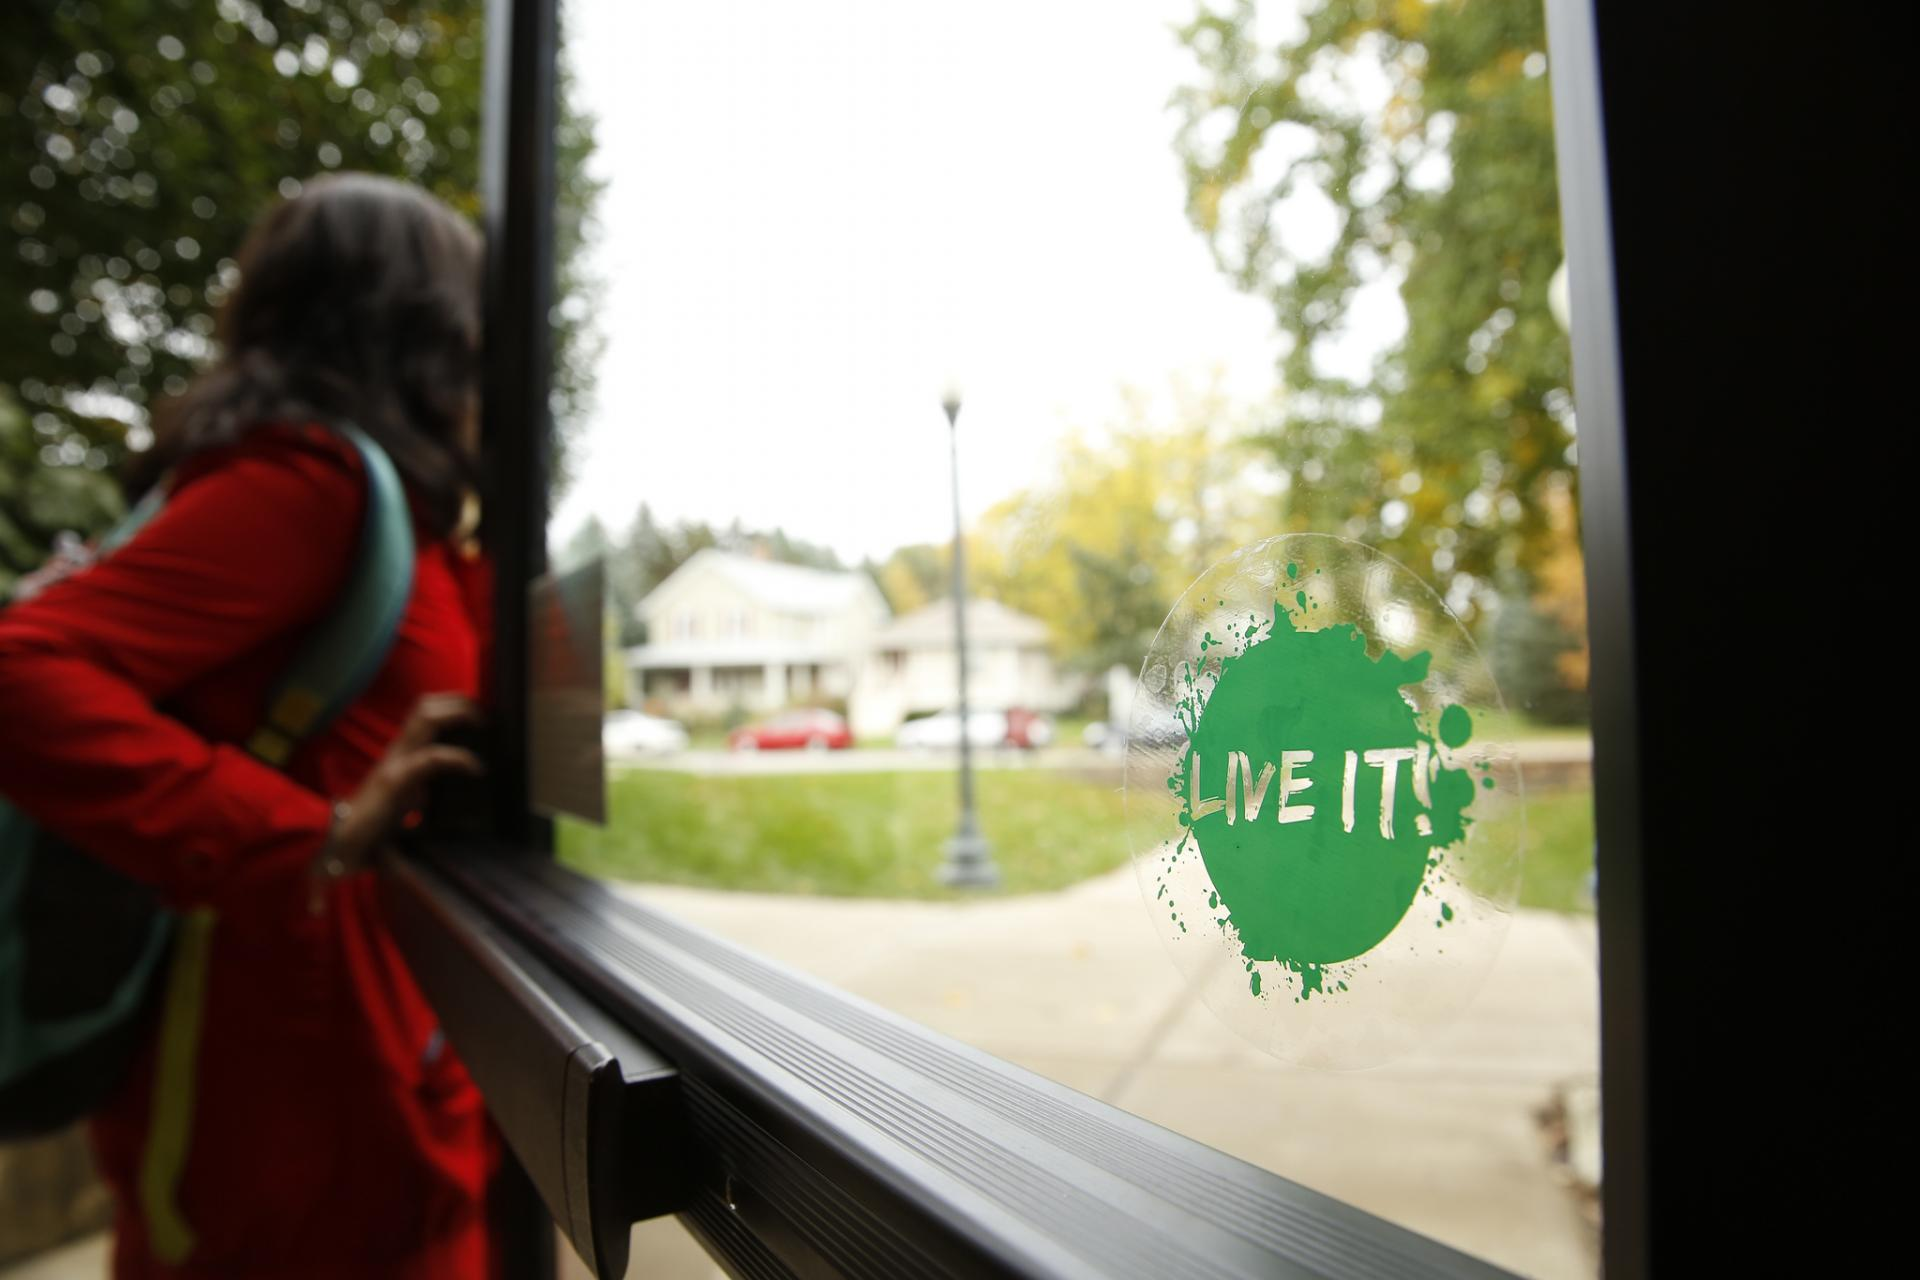 North Central's Green Dot bystander intervention program hosts community event on July 26